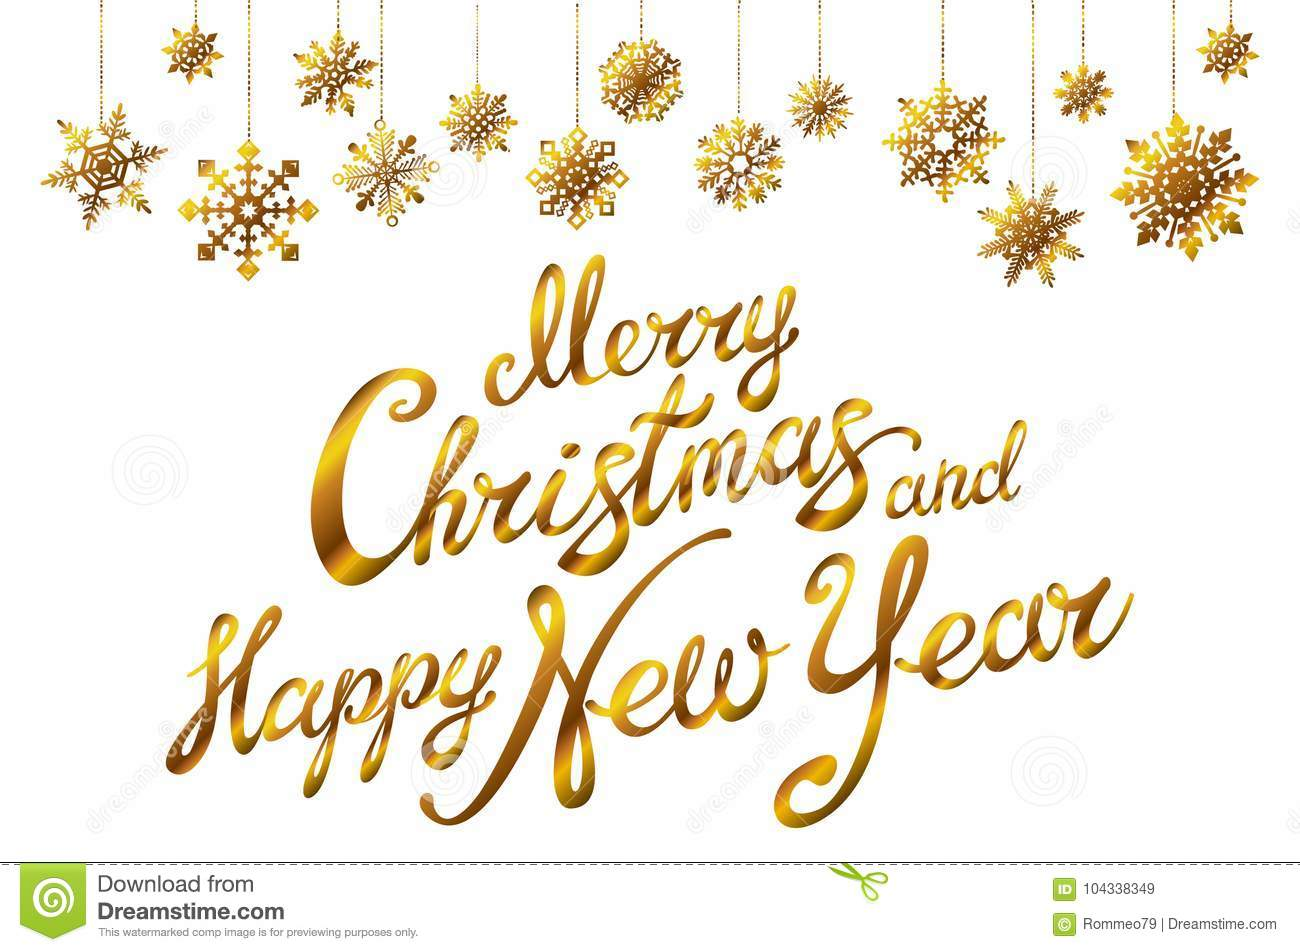 merry christmas and happy new year holiday vector illustration with lettering composition with snowflakes gold stock vector illustration of banner postcard 104338349 https www dreamstime com merry christmas happy new year holiday vector illustration lettering composition snowflakes gold merry christmas image104338349